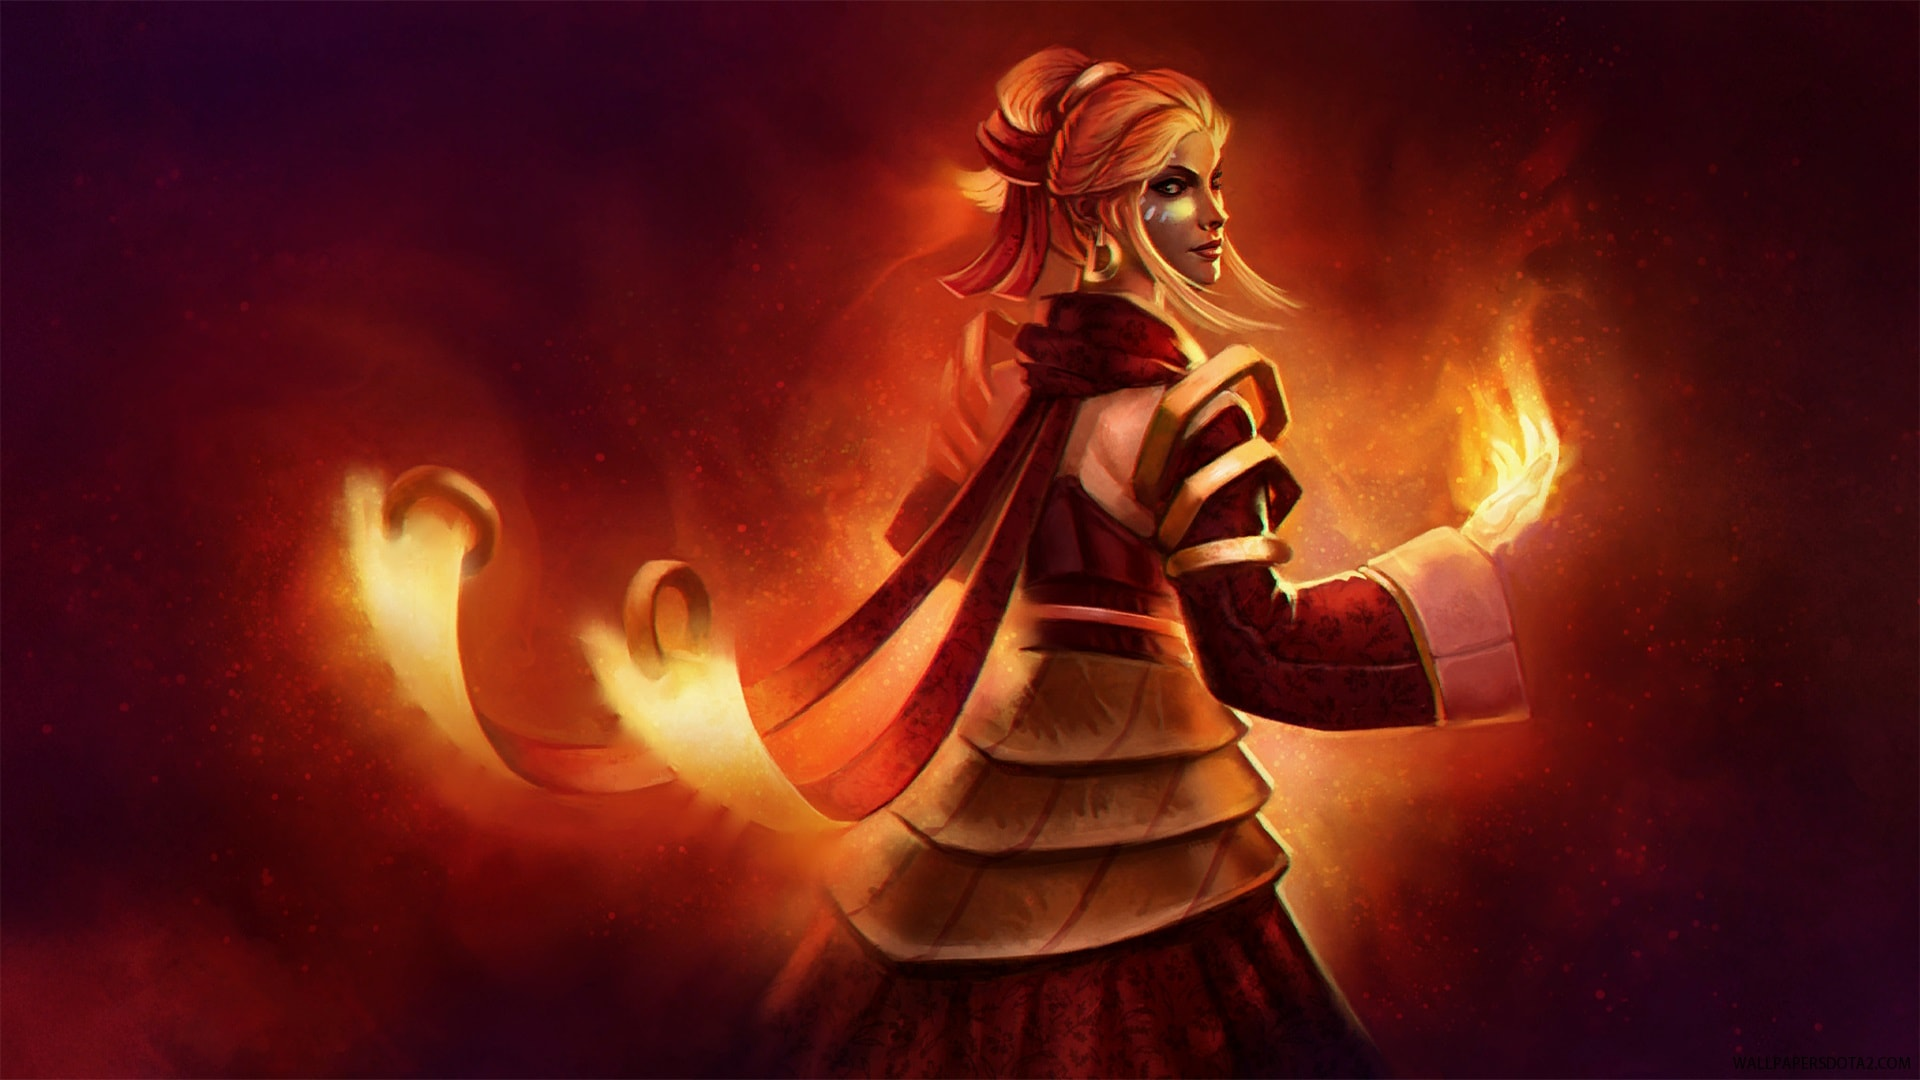 Dota2 : Lina full hd wallpapers